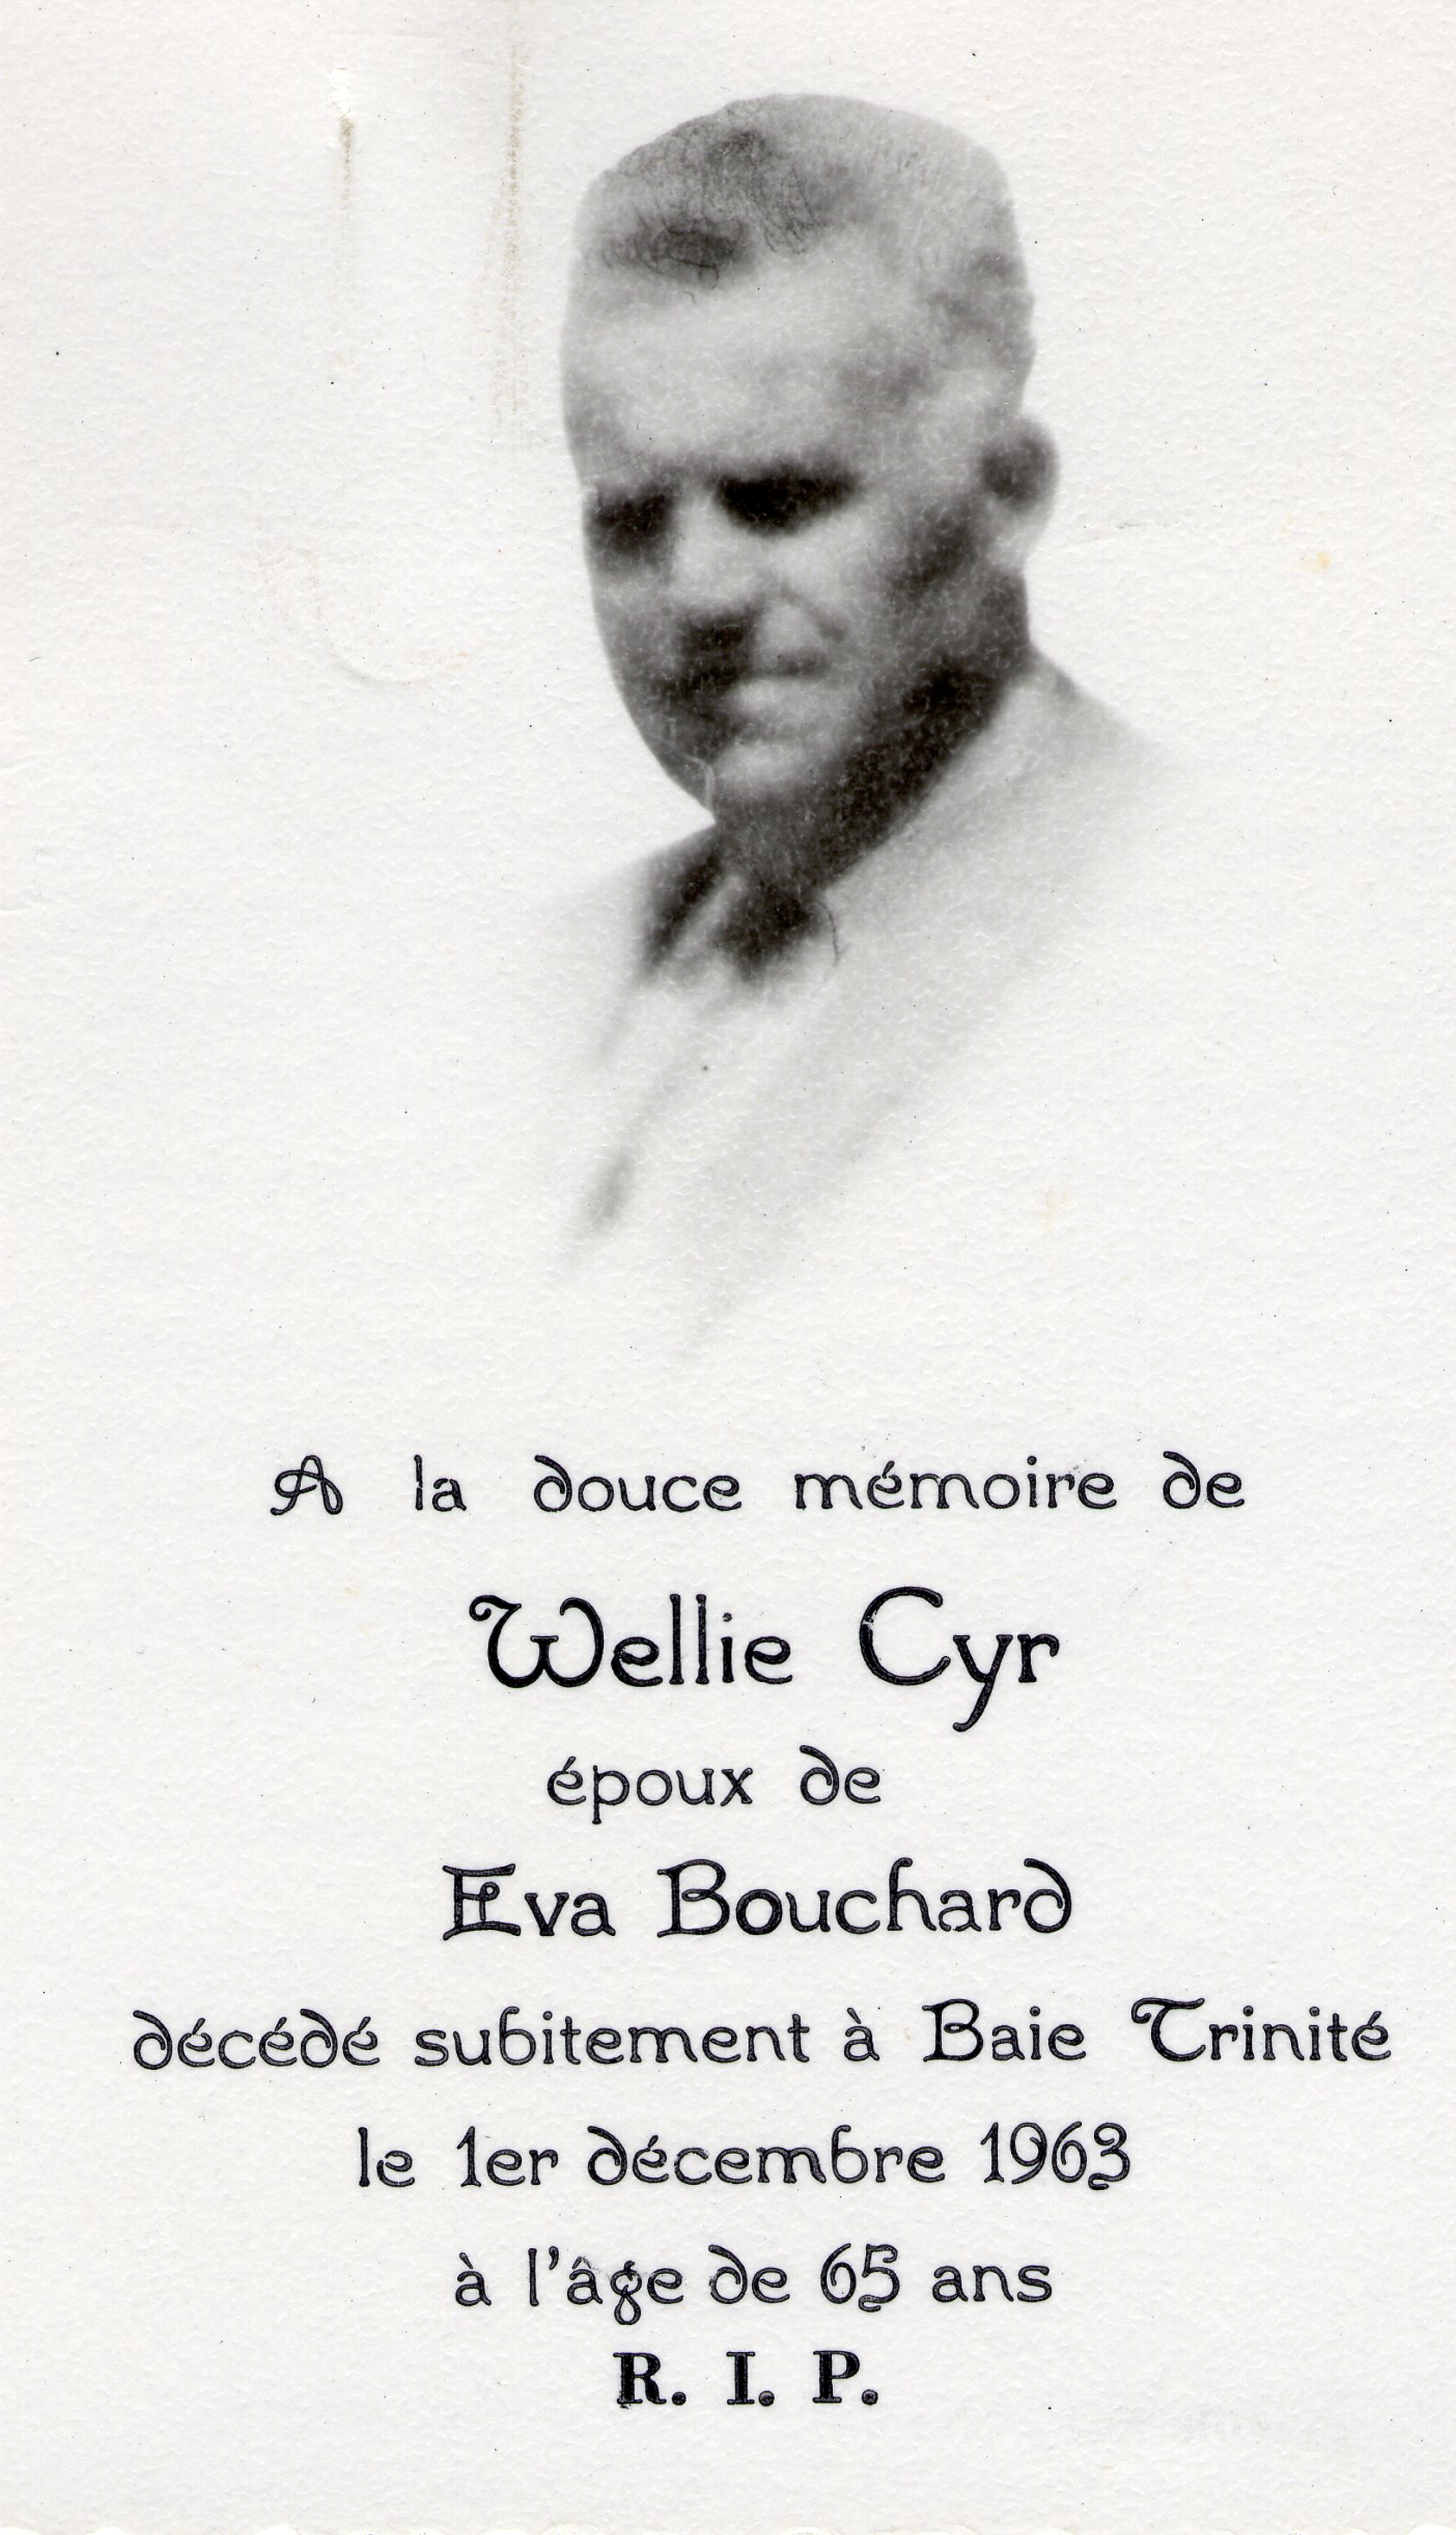 Welly Cyr 1898-1965